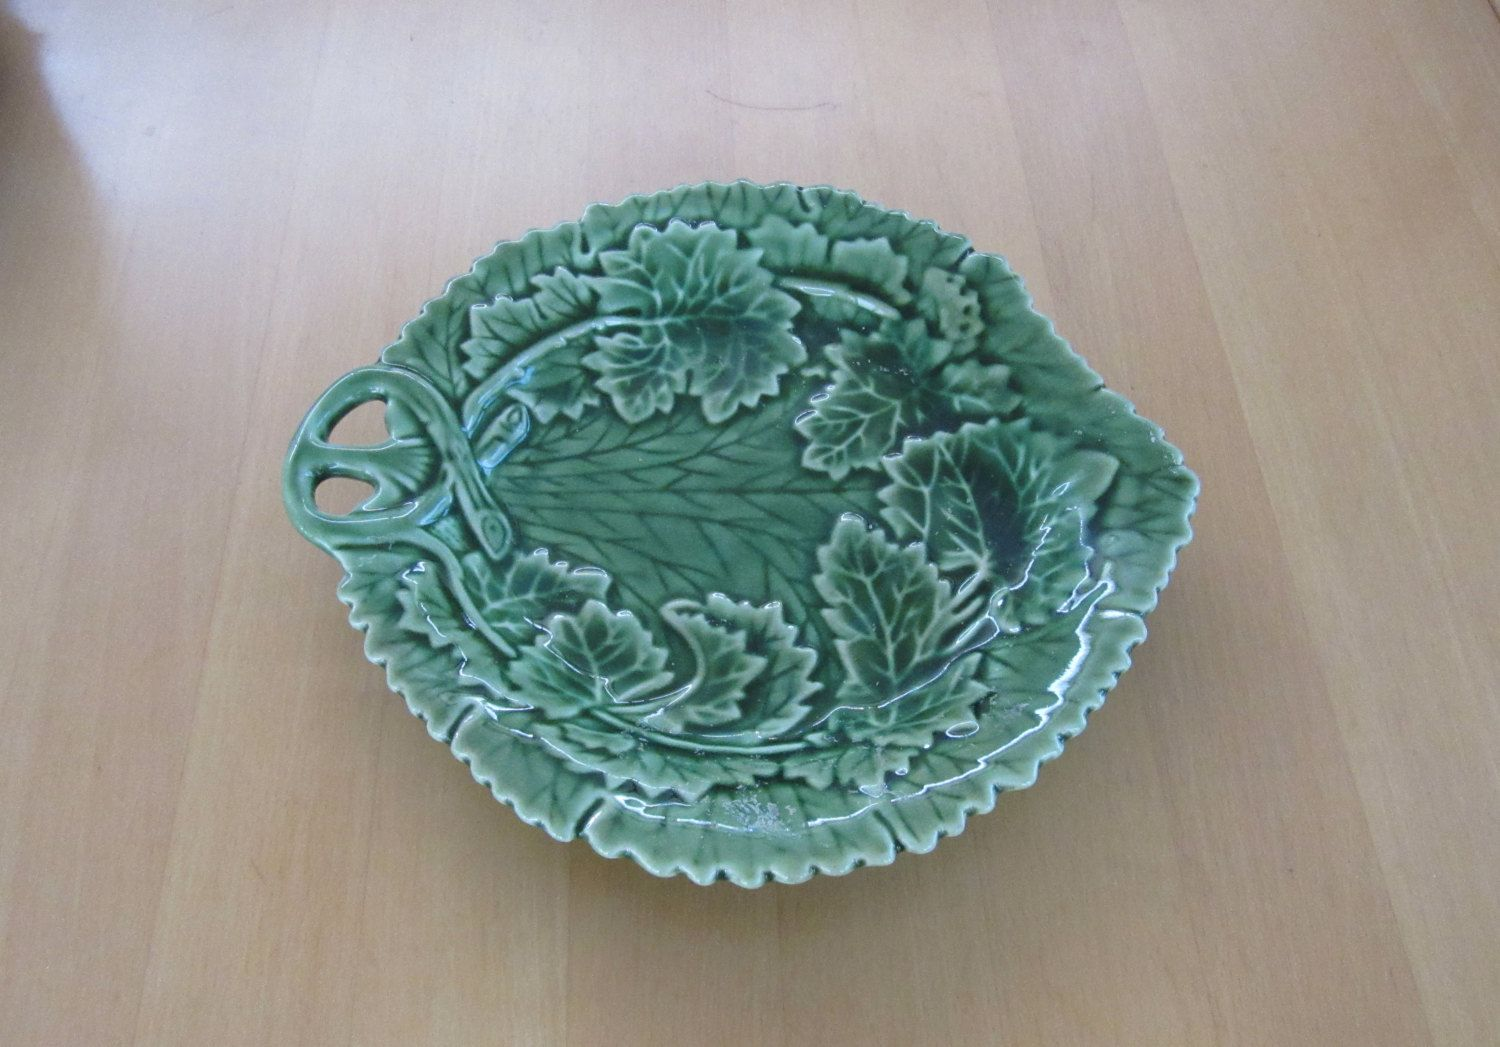 Pretty vintage green ceramic leaf shaped candy or trinket dish with leaves and vines by booksntrinkets on Etsy https://www.etsy.com/listing/220123789/pretty-vintage-green-ceramic-leaf-shaped